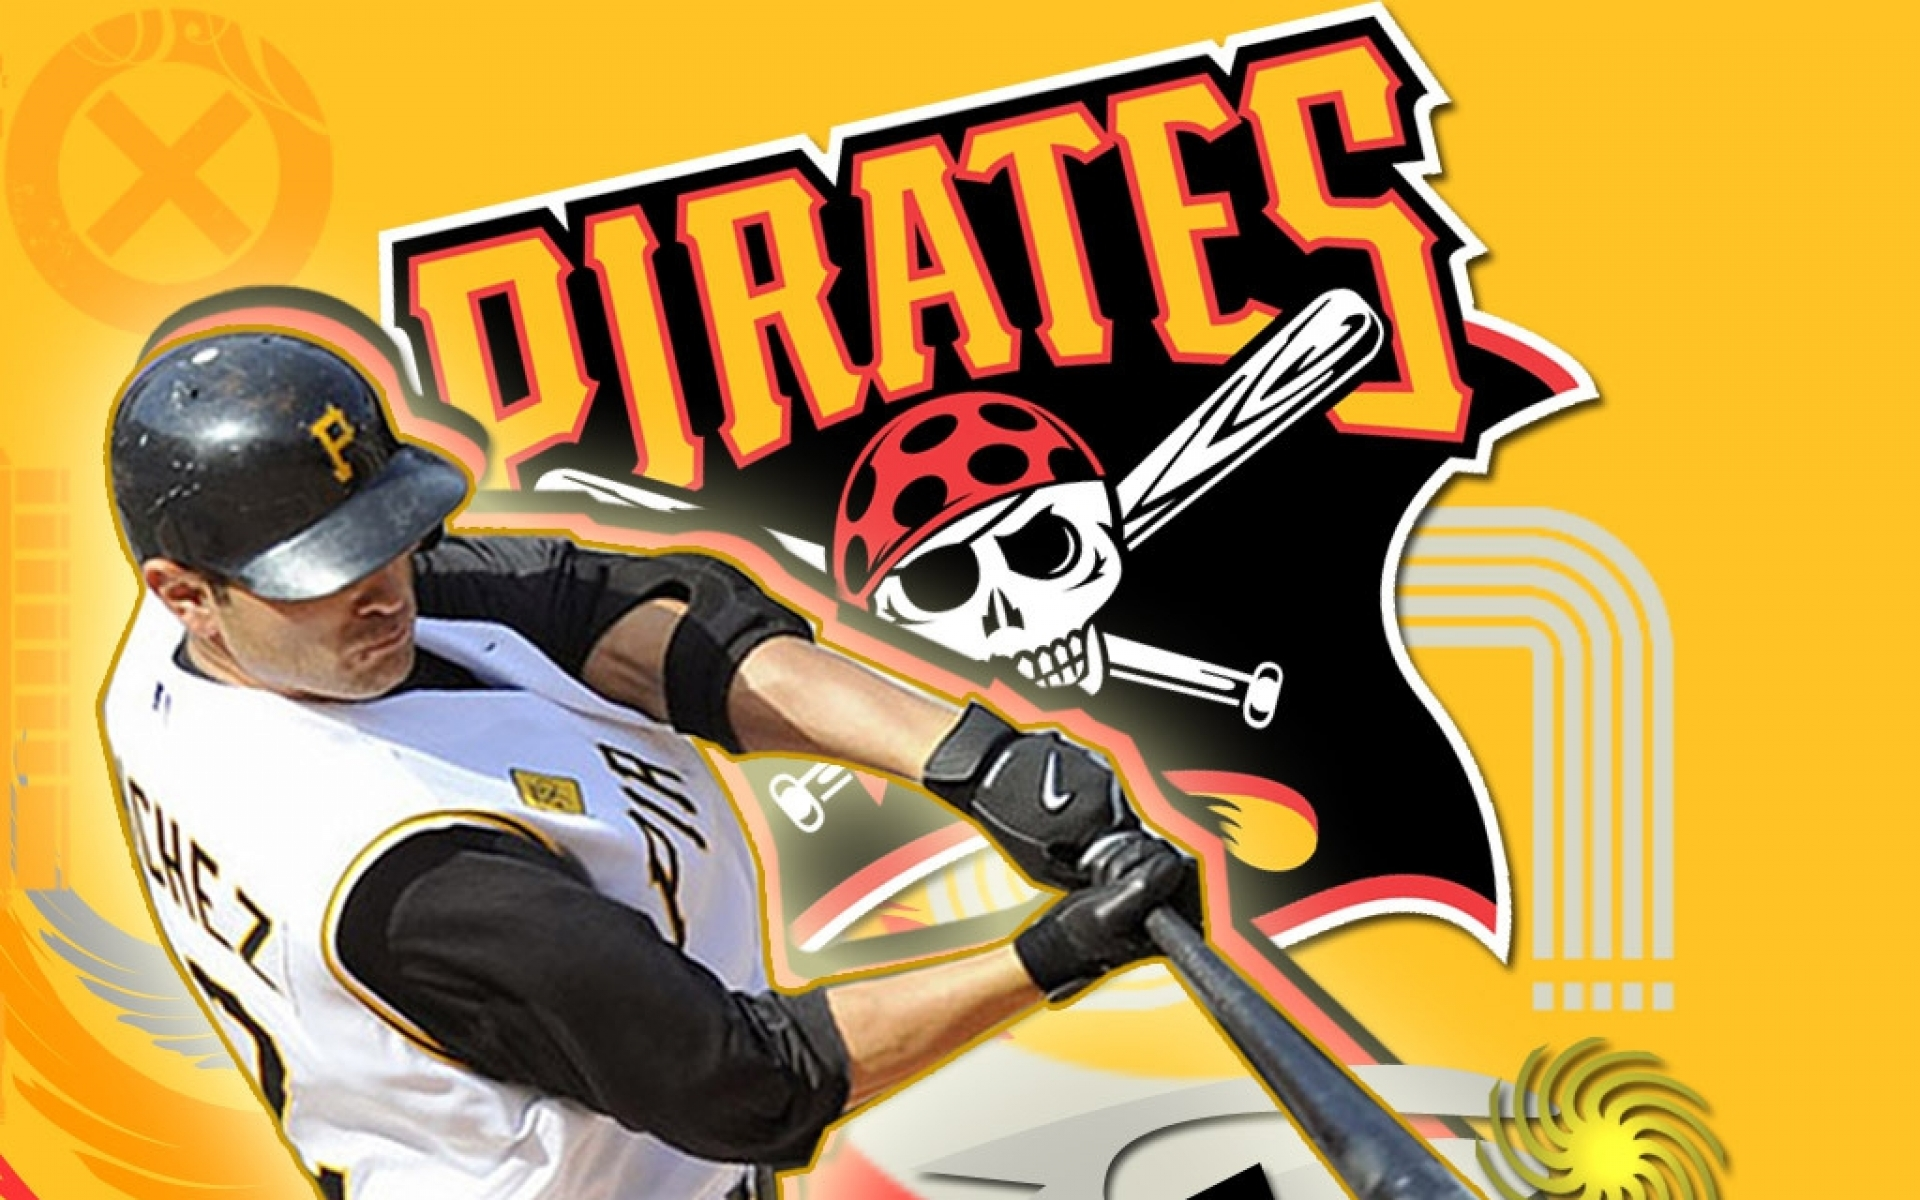 Pittsburgh Pirates HD Wallpapers Hd Wallpapers 1920x1200